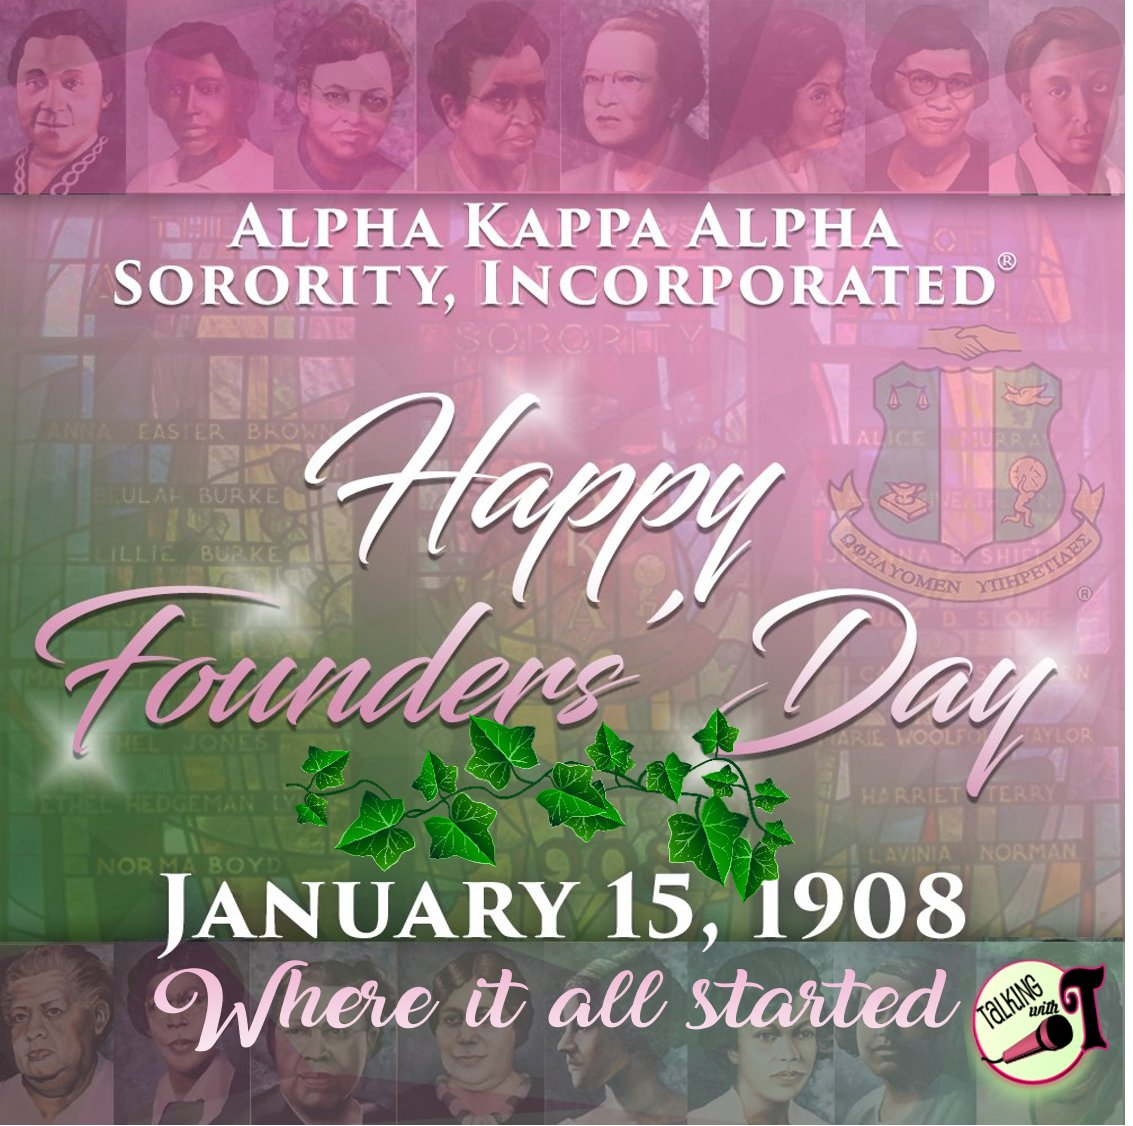 Happy Founders day to the lovely ladies of Alpha Kappa Alpha Sorority, Inc. #SkeeWeeSorors #J15 #FirstandFinest